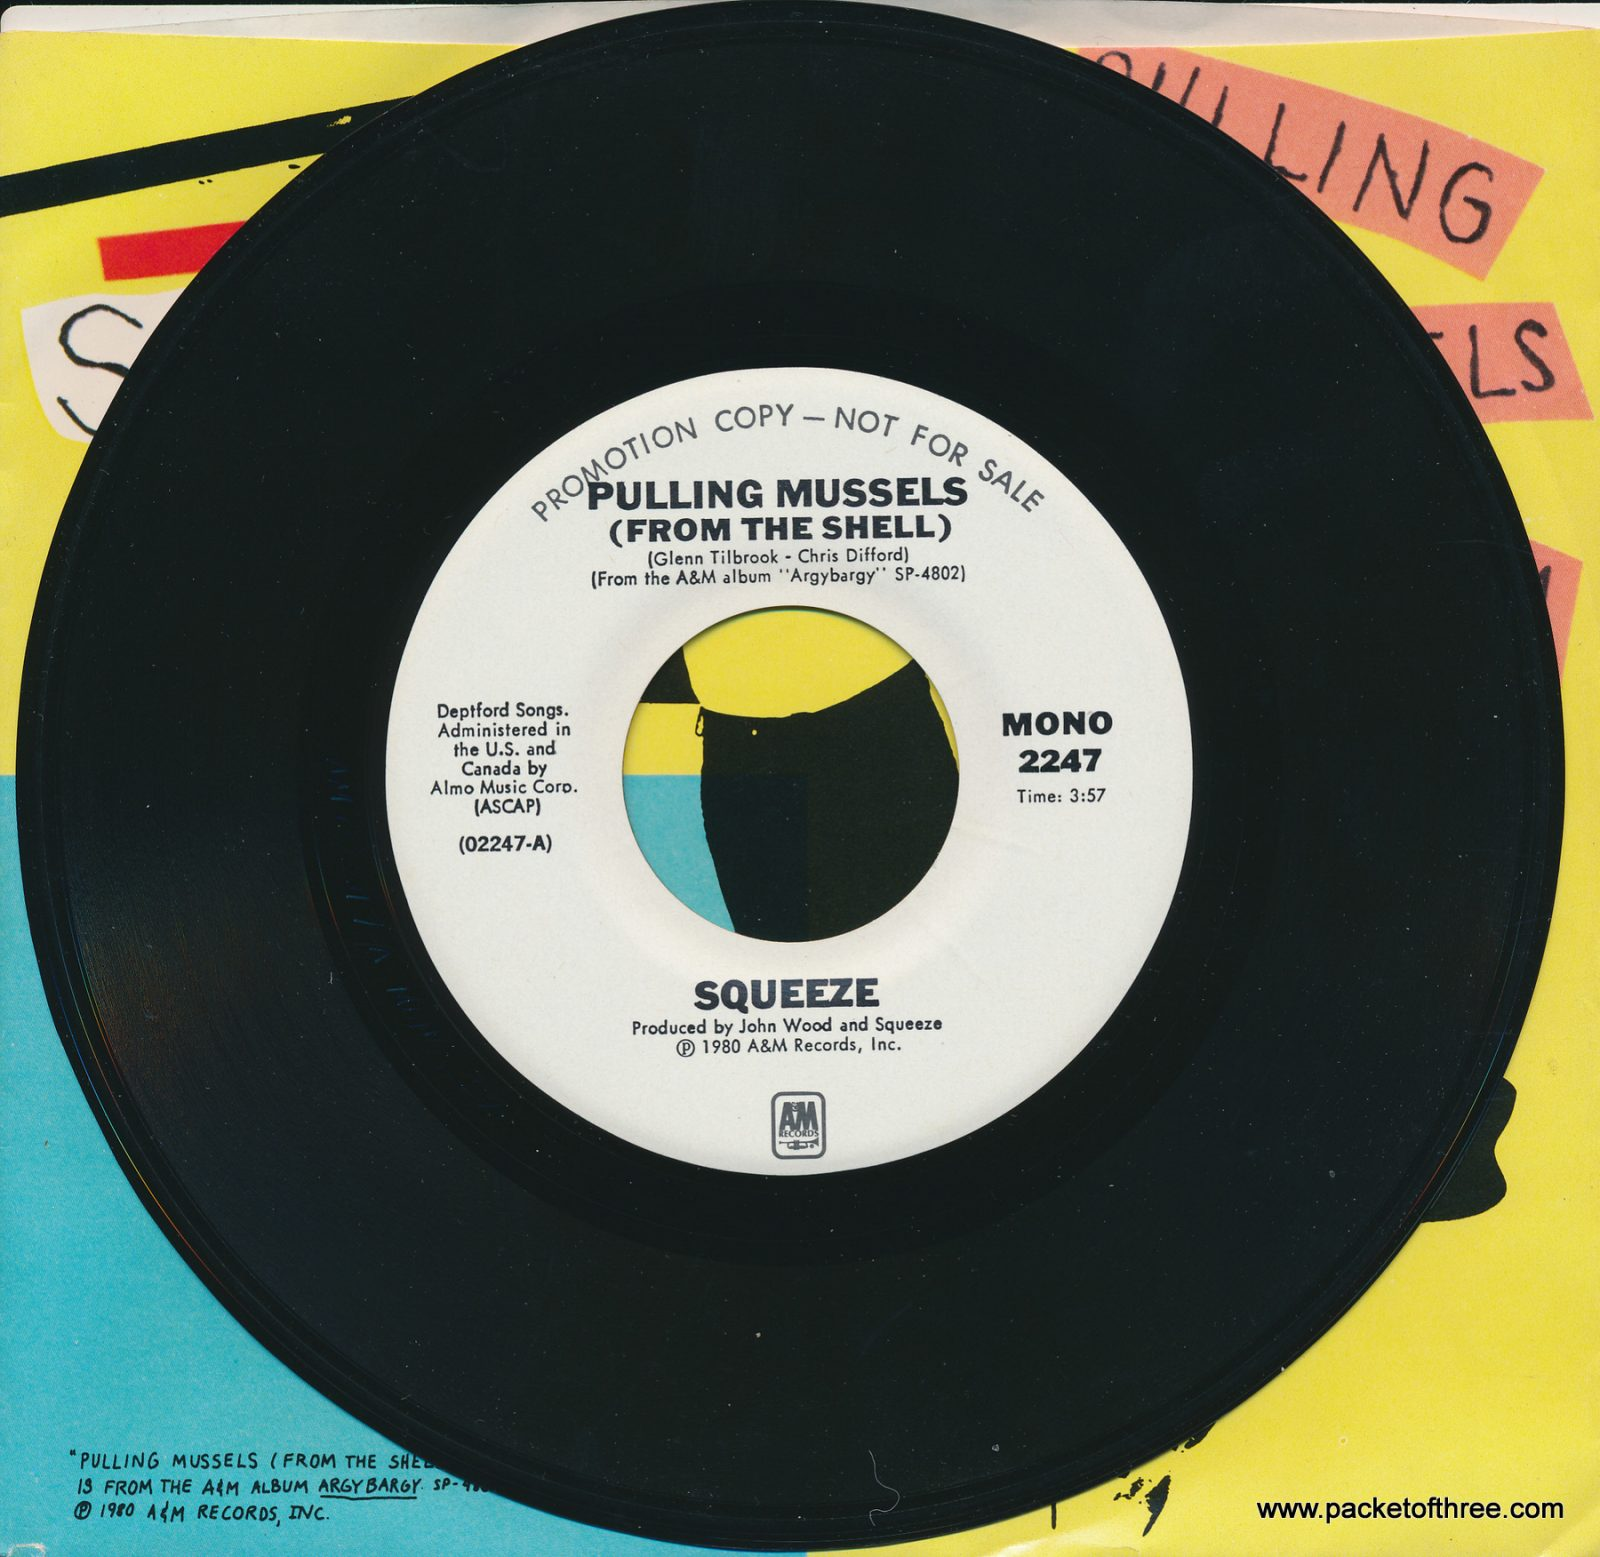 """Pulling Mussels (From the Shell) - USA - 7"""" - picture sleeve - mono/stereo promotional copy"""